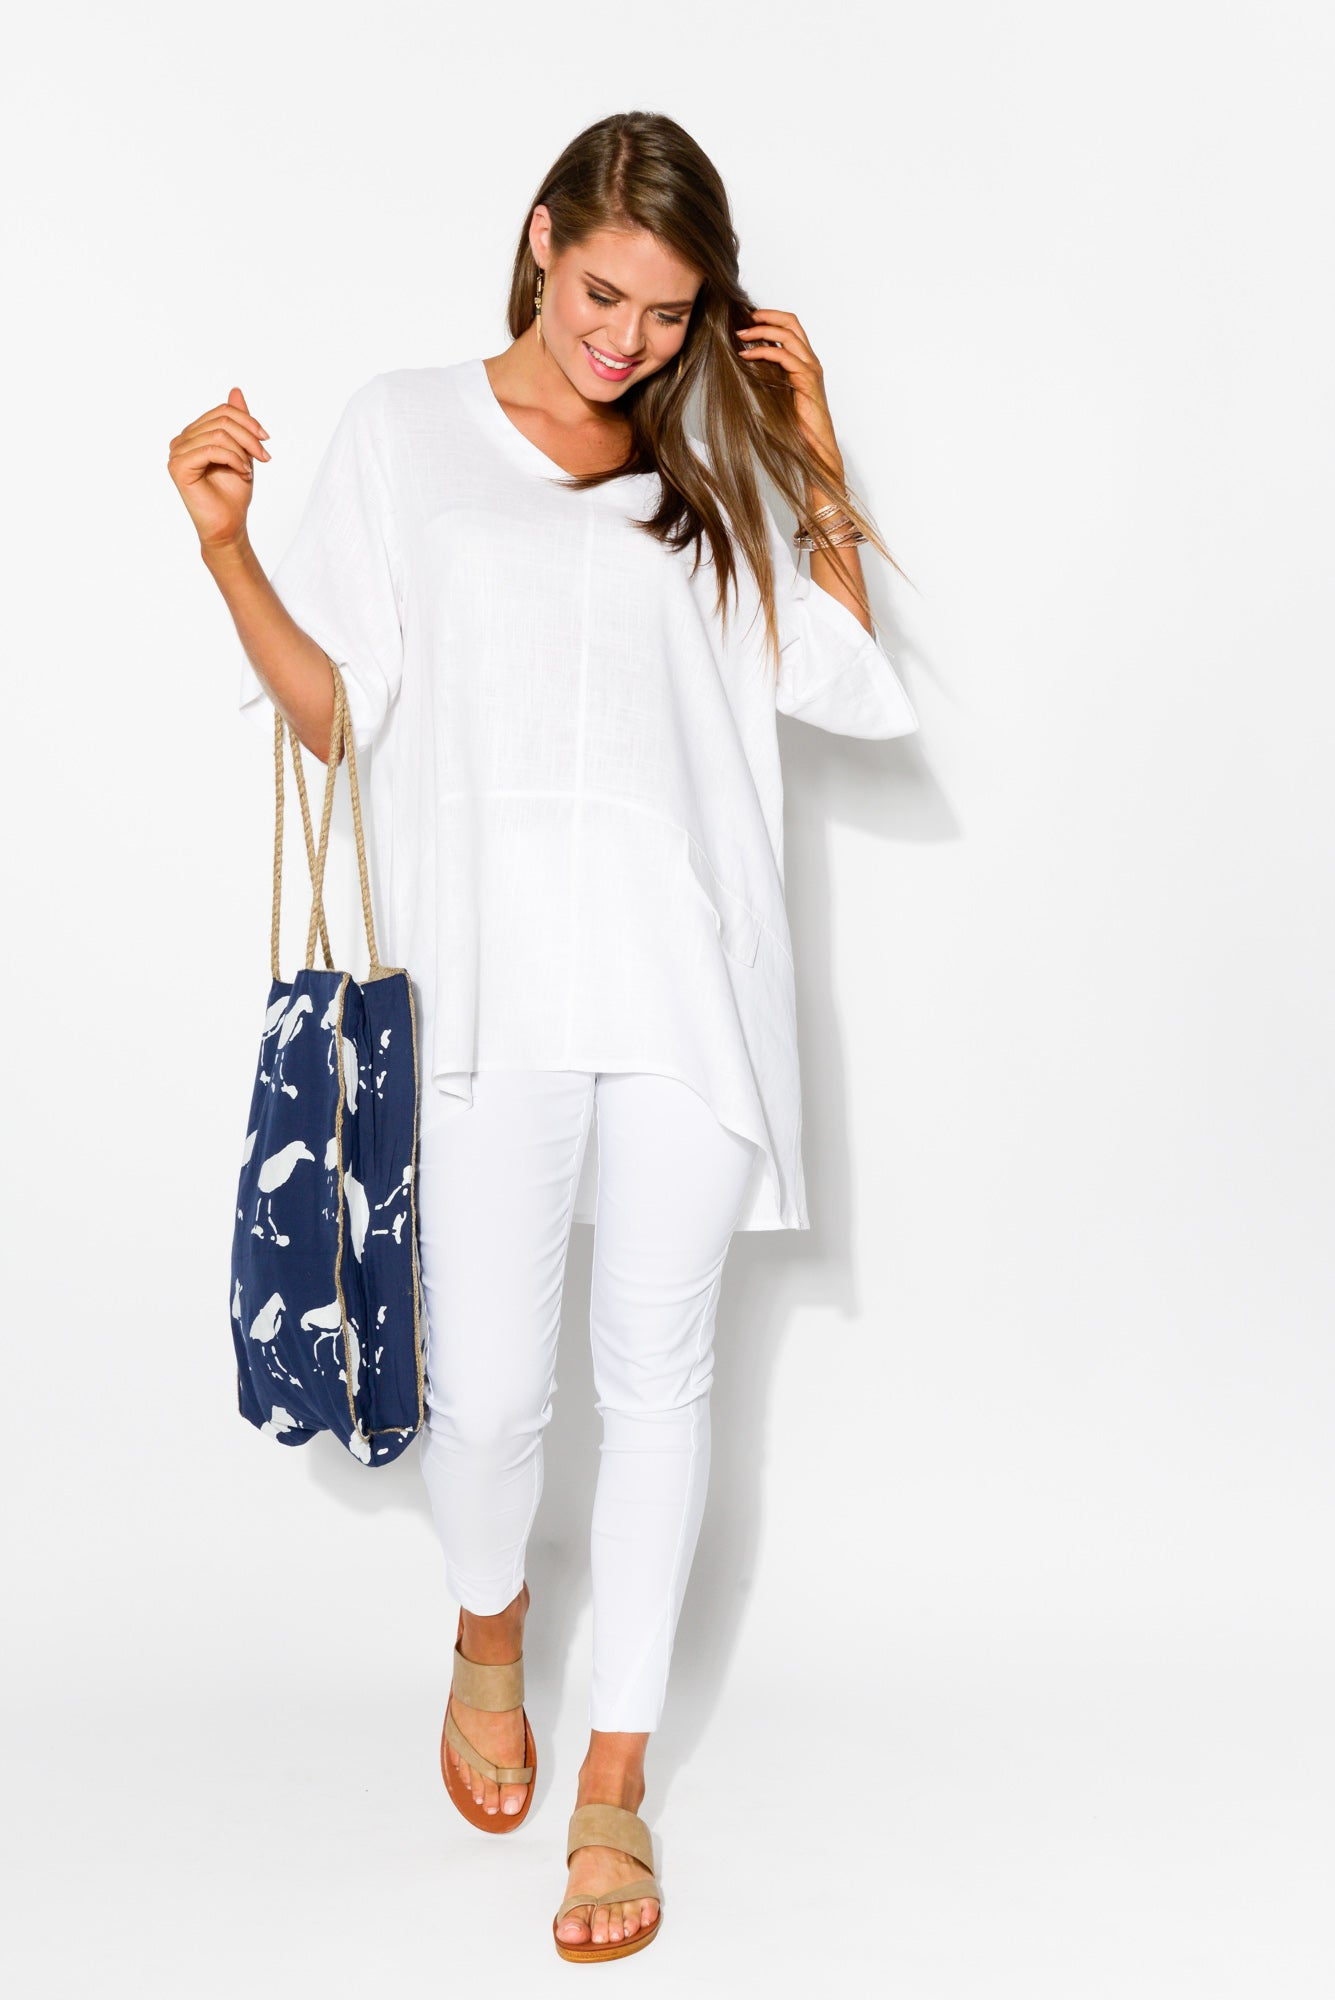 Neptune White Linen Cotton Top - Blue Bungalow